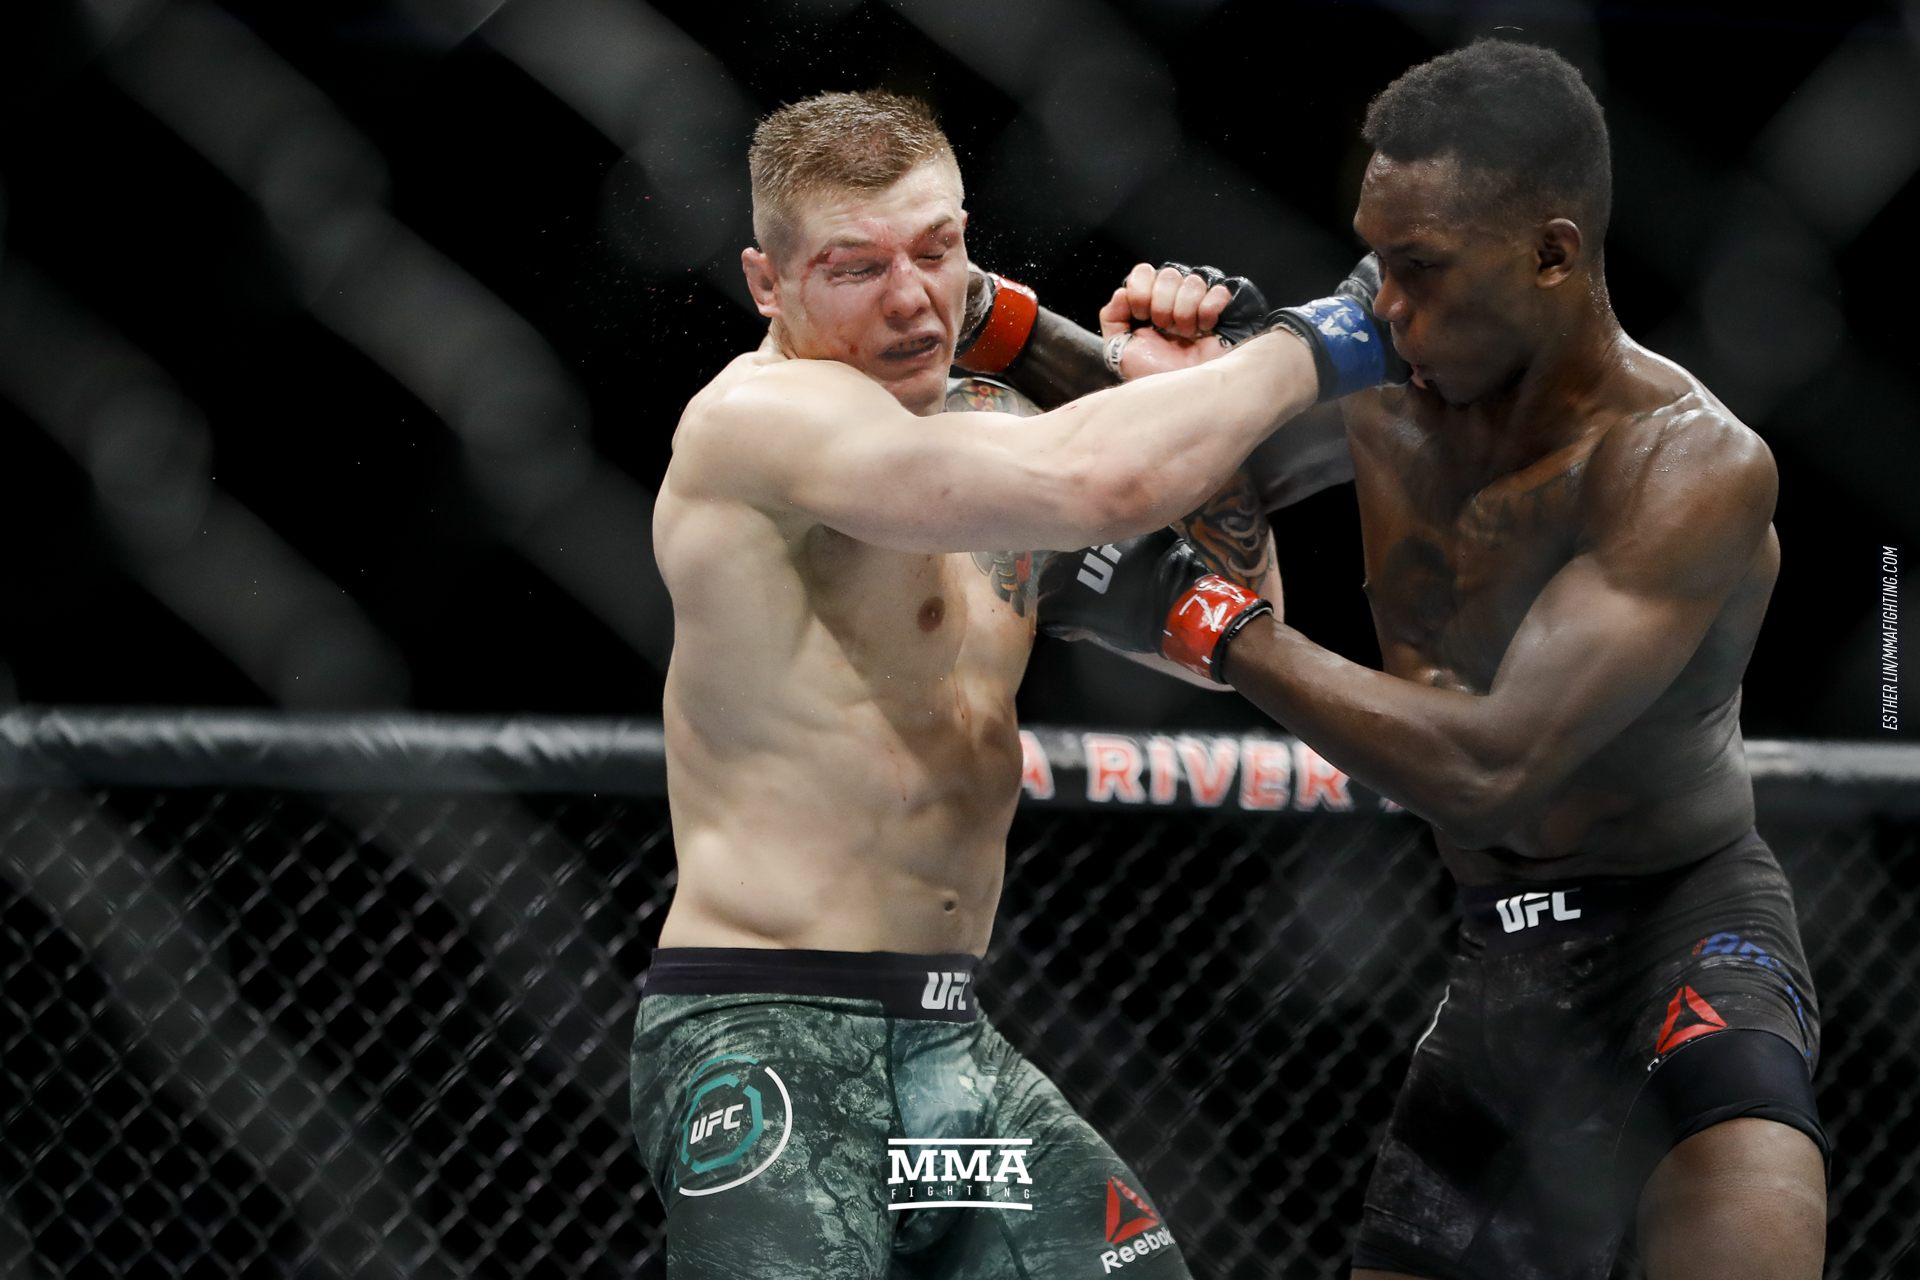 Israel Adesanya coach says of wrestling Marvin Vettori's: 'Is Marvin as good as Jan Blachowicz?'